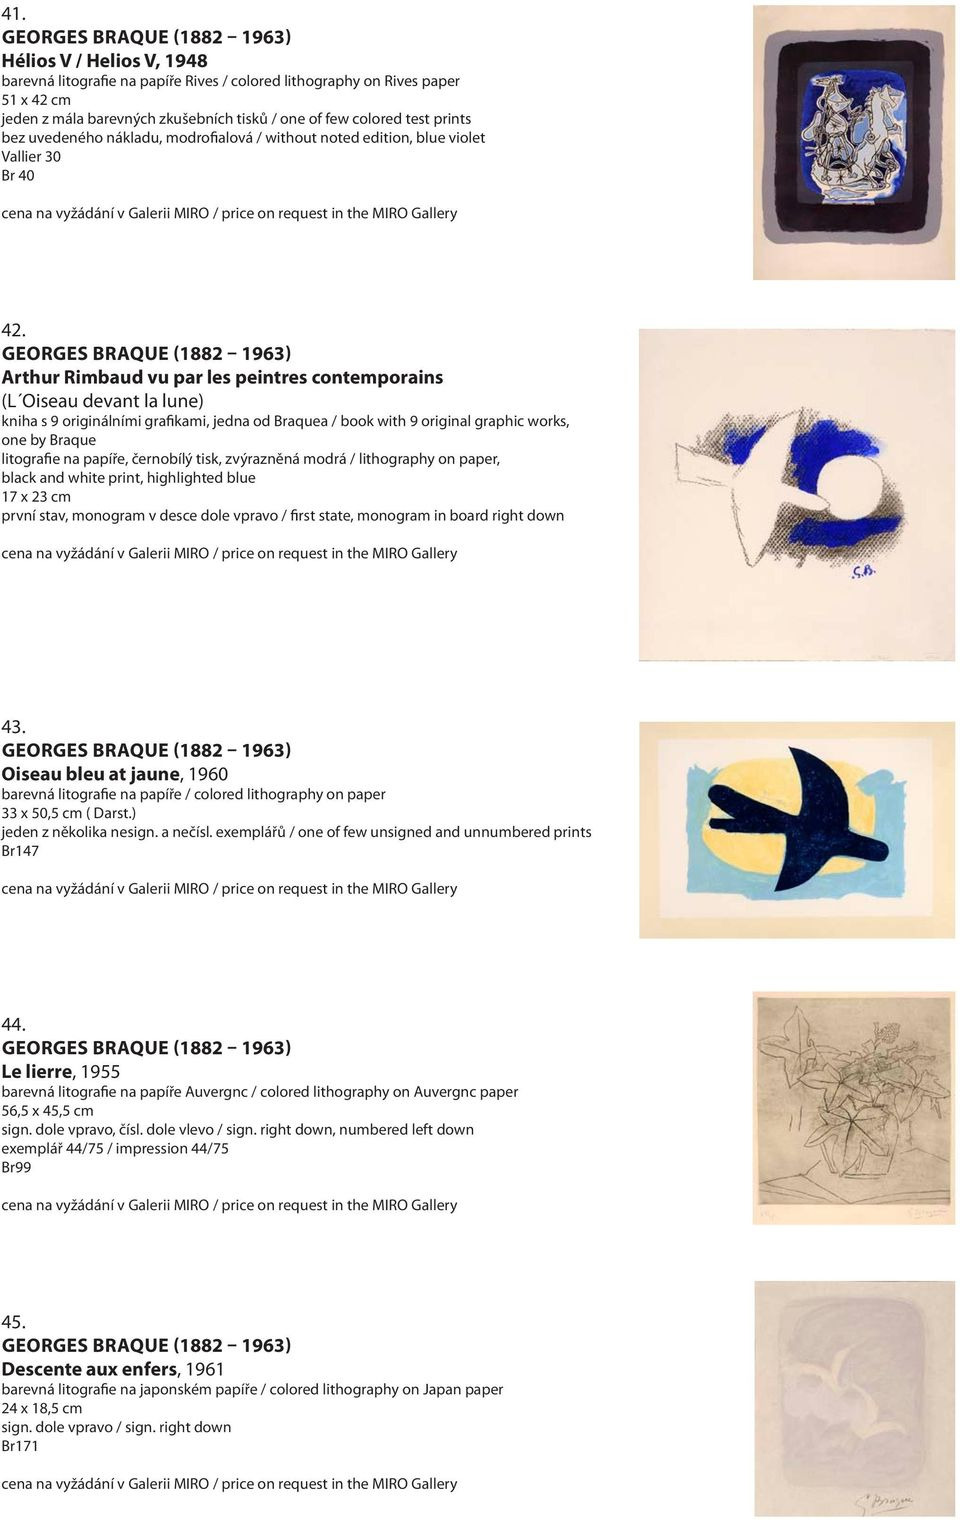 Arthur Rimbaud vu par les peintres contemporains (L Oiseau devant la lune) kniha s 9 originálními grafikami, jedna od Braquea / book with 9 original graphic works, one by Braque litografie na papíře,